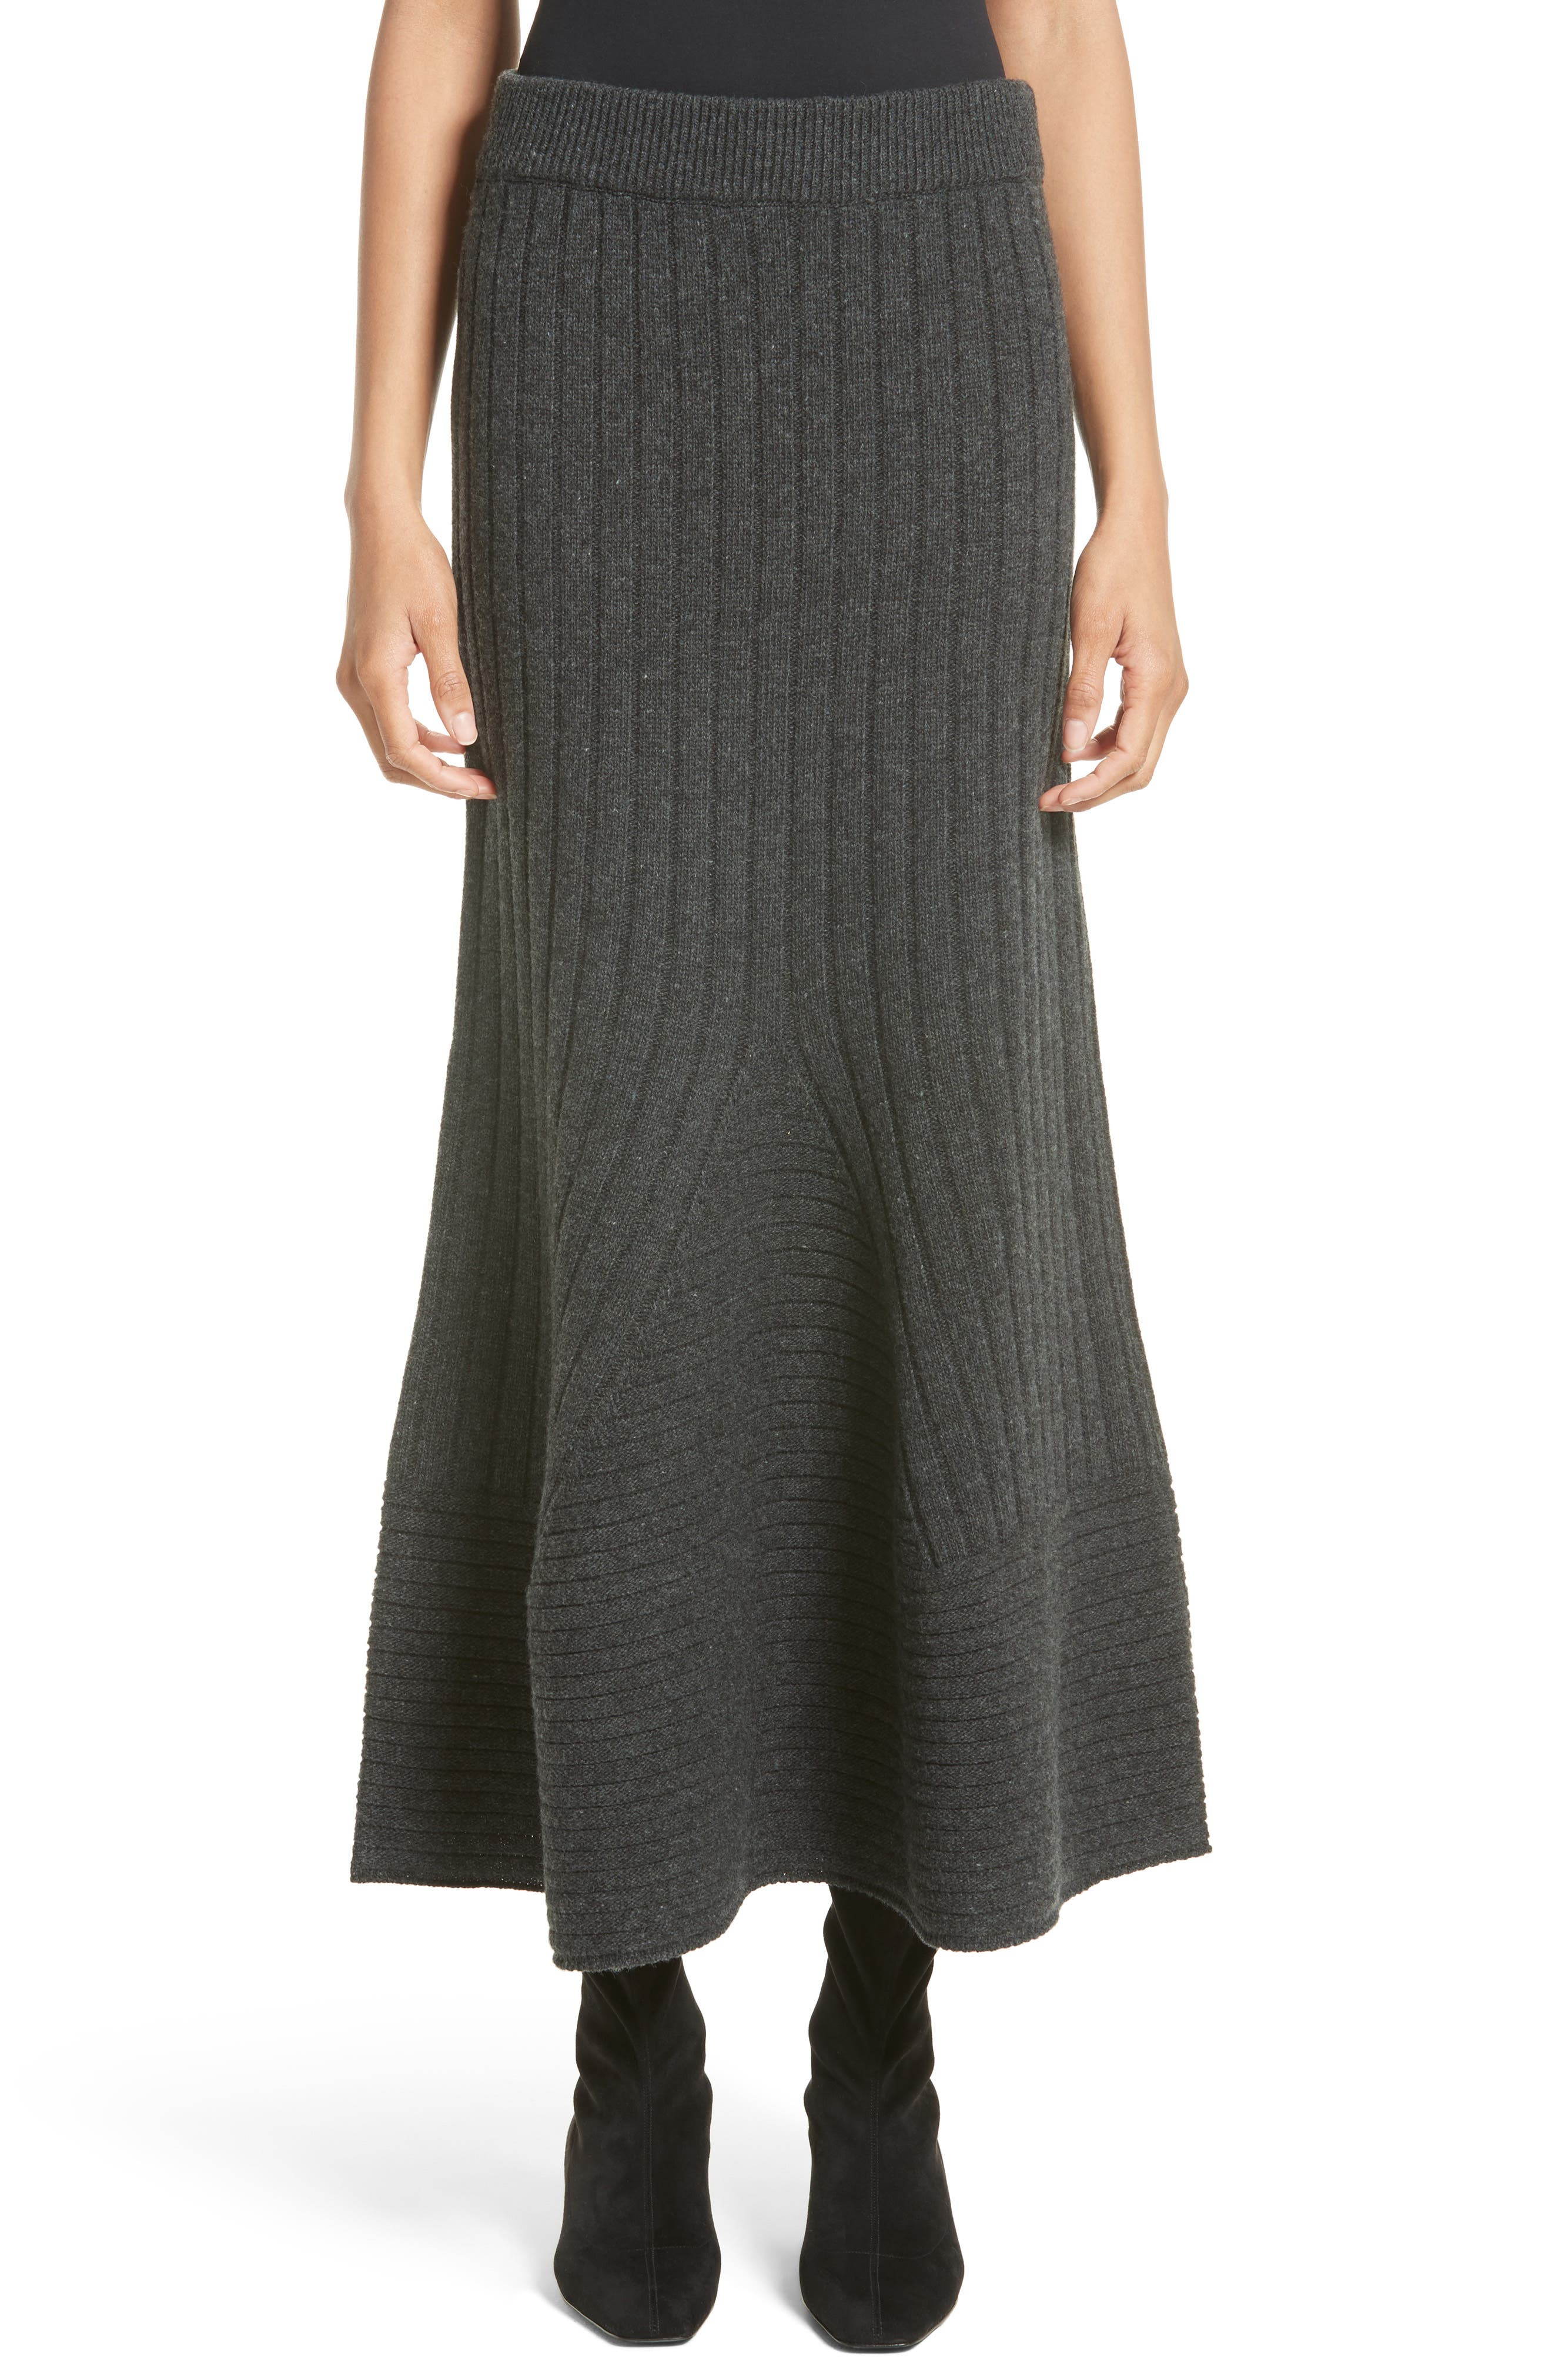 Stella McCartney Knit Wool Maxi Skirt